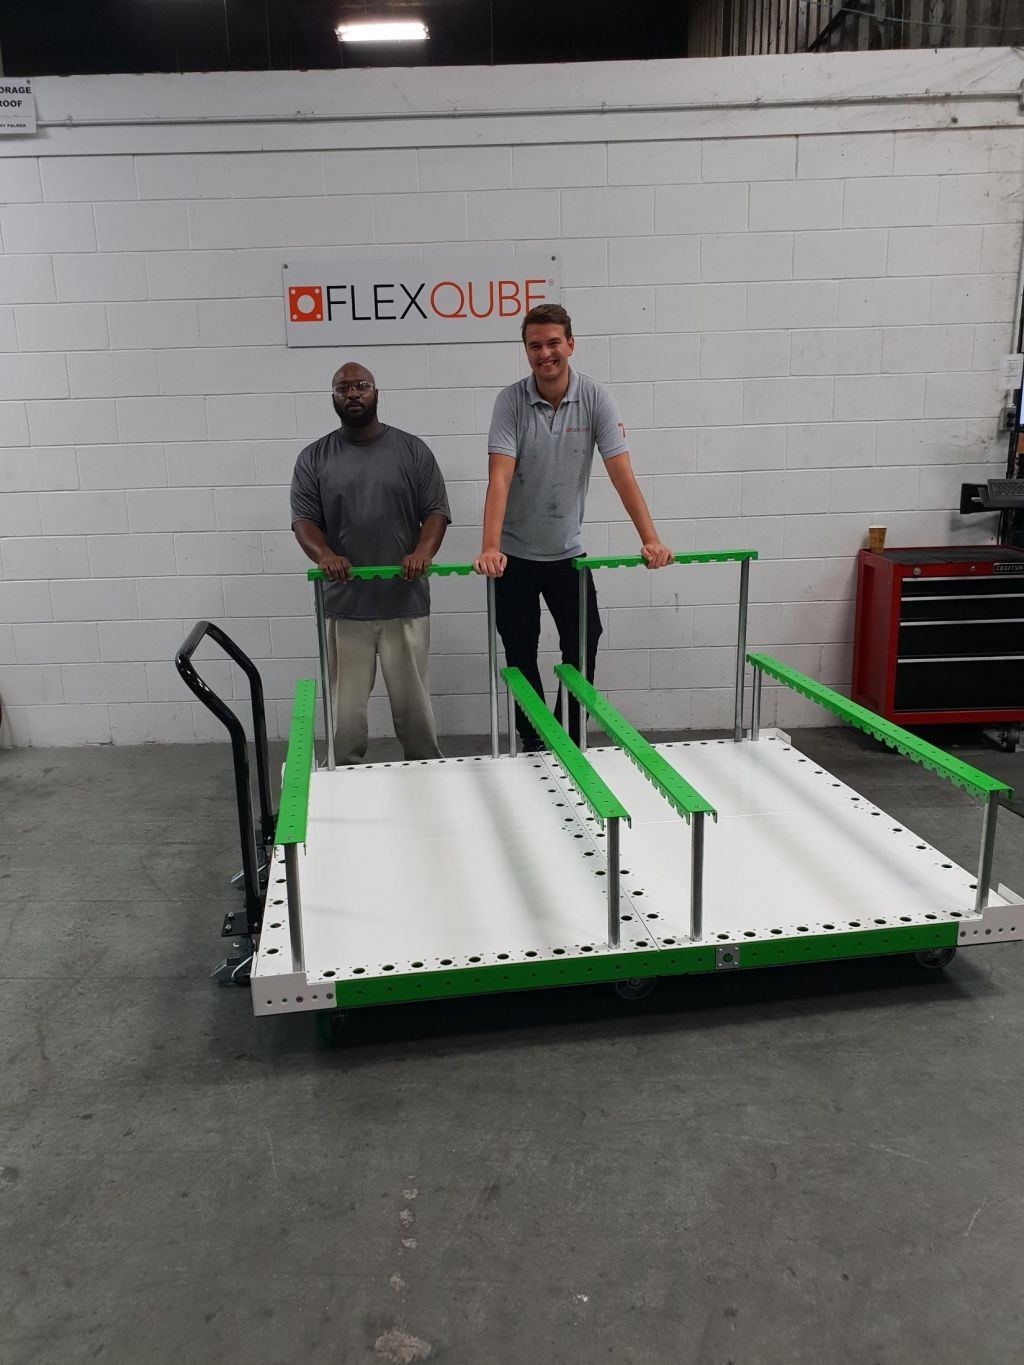 FlexQUbe purchasing manager doing assembly